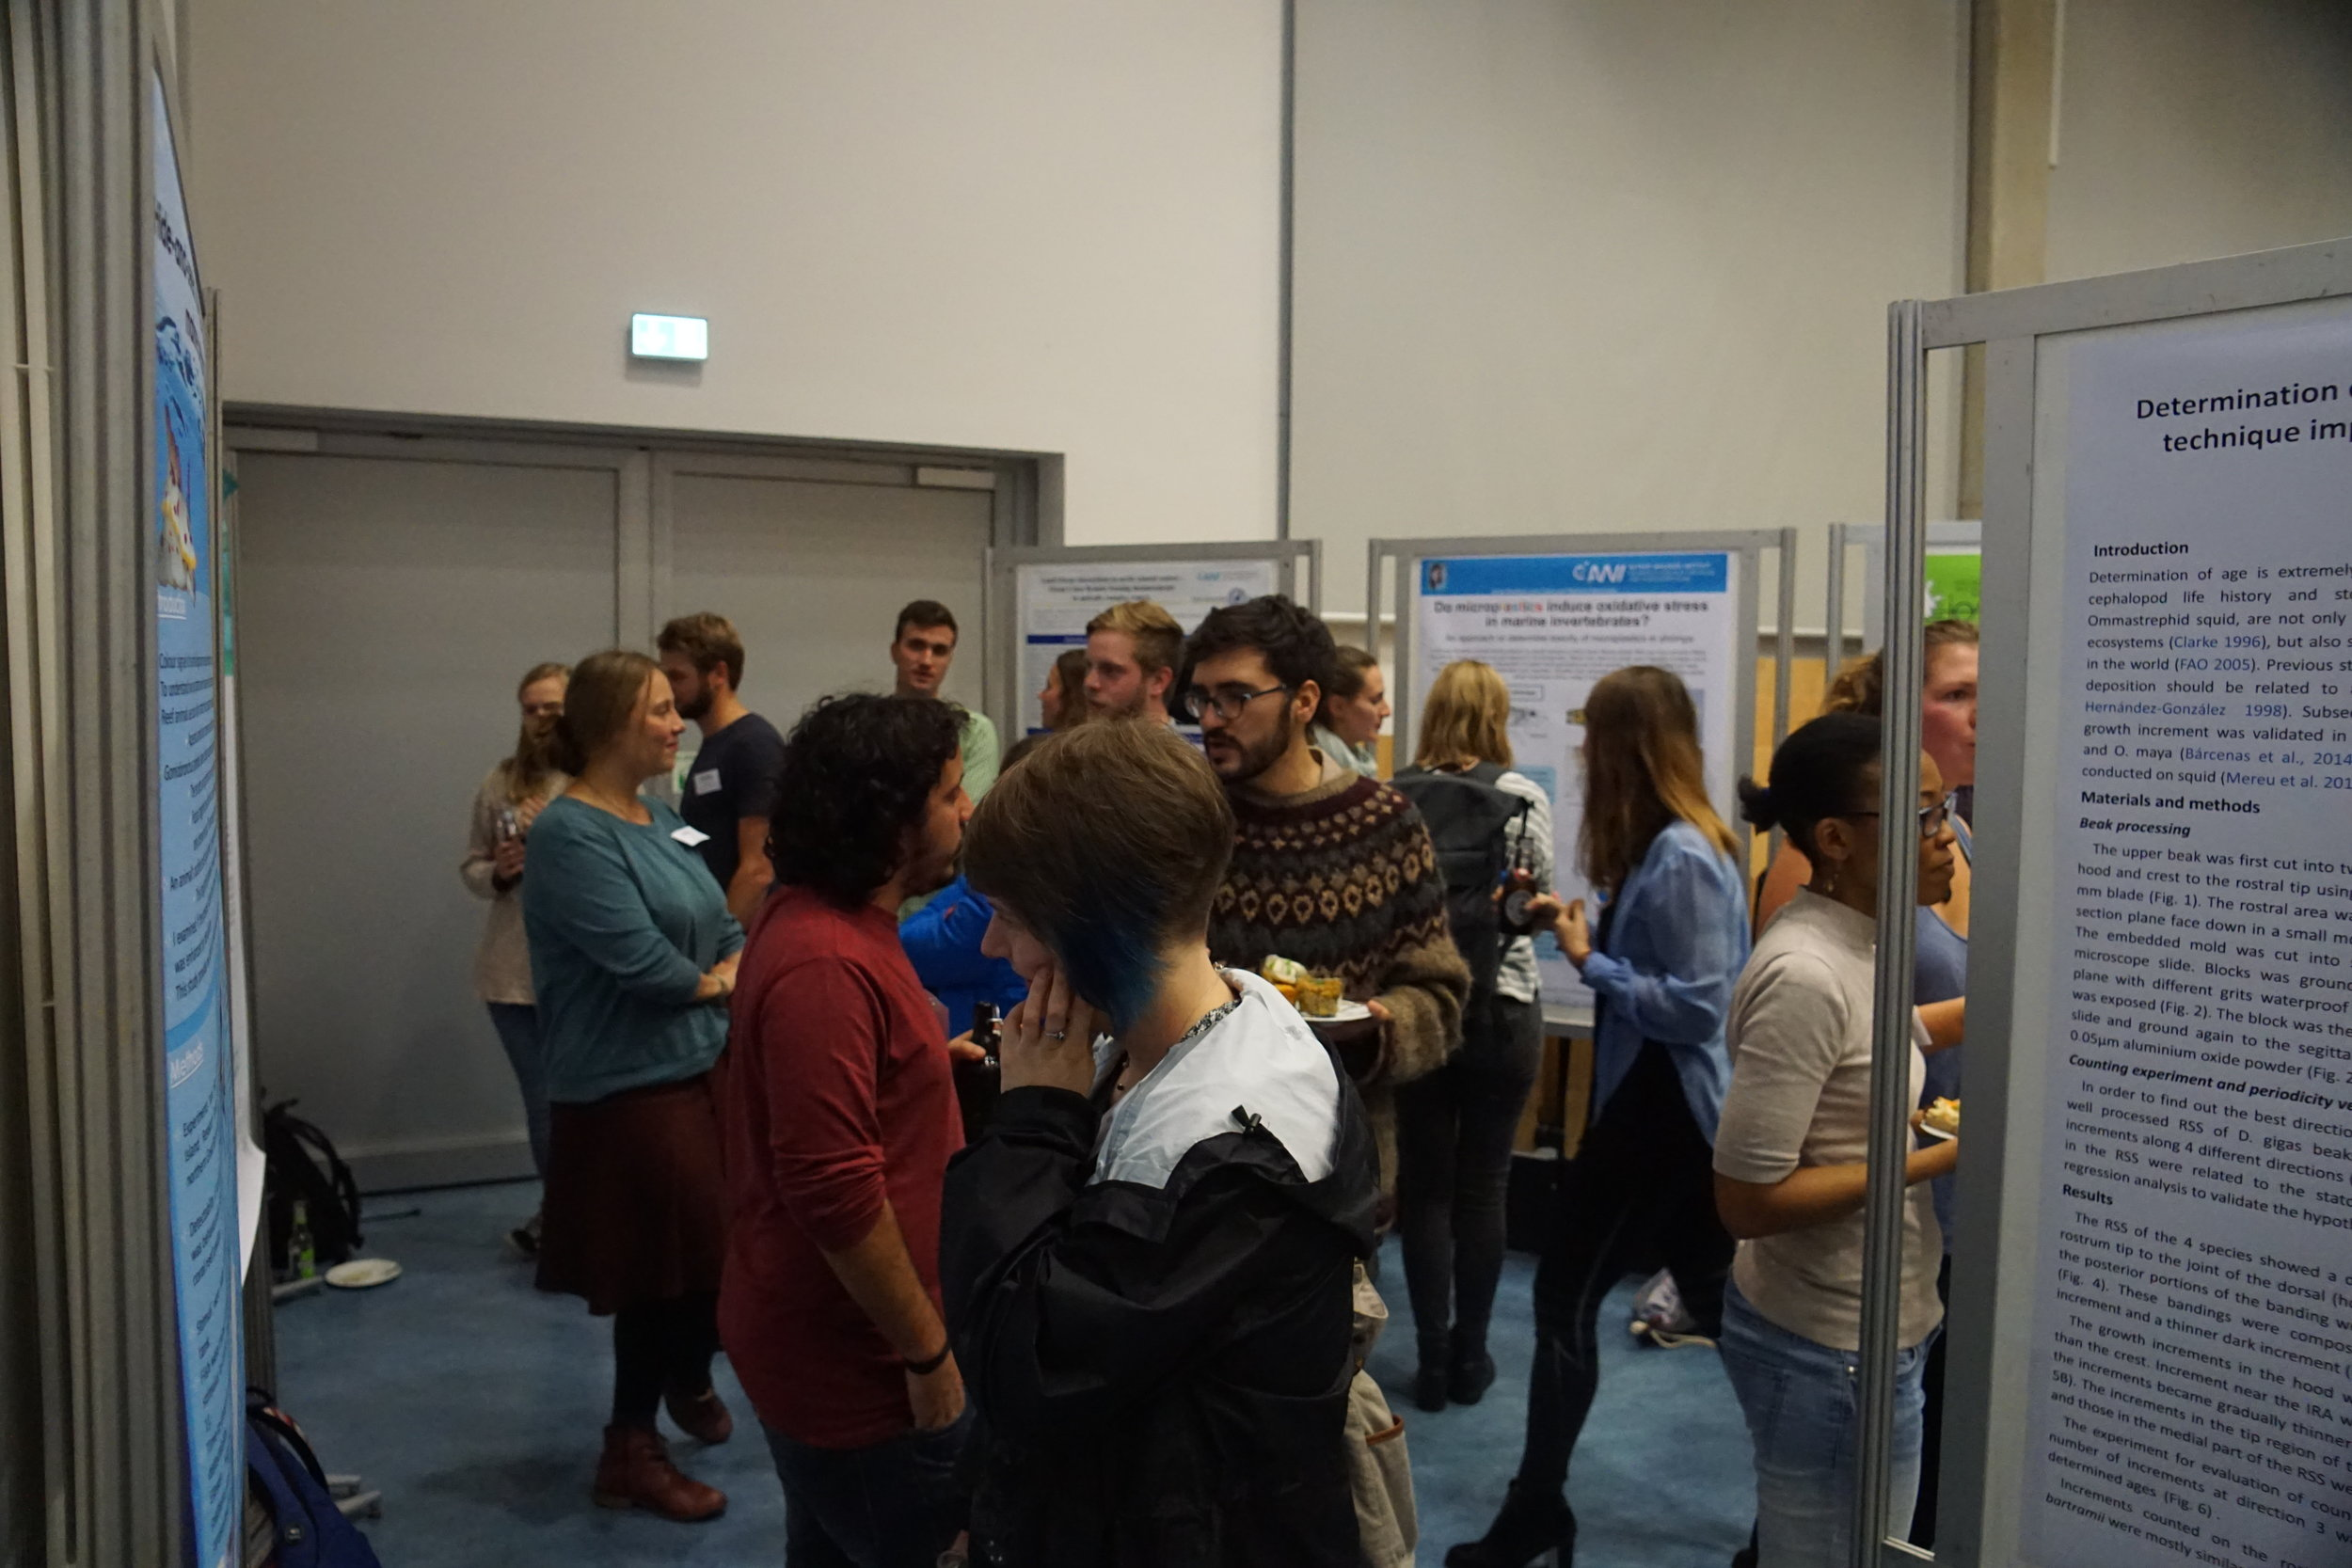 Busy poster session. Credit: Mara Weidung